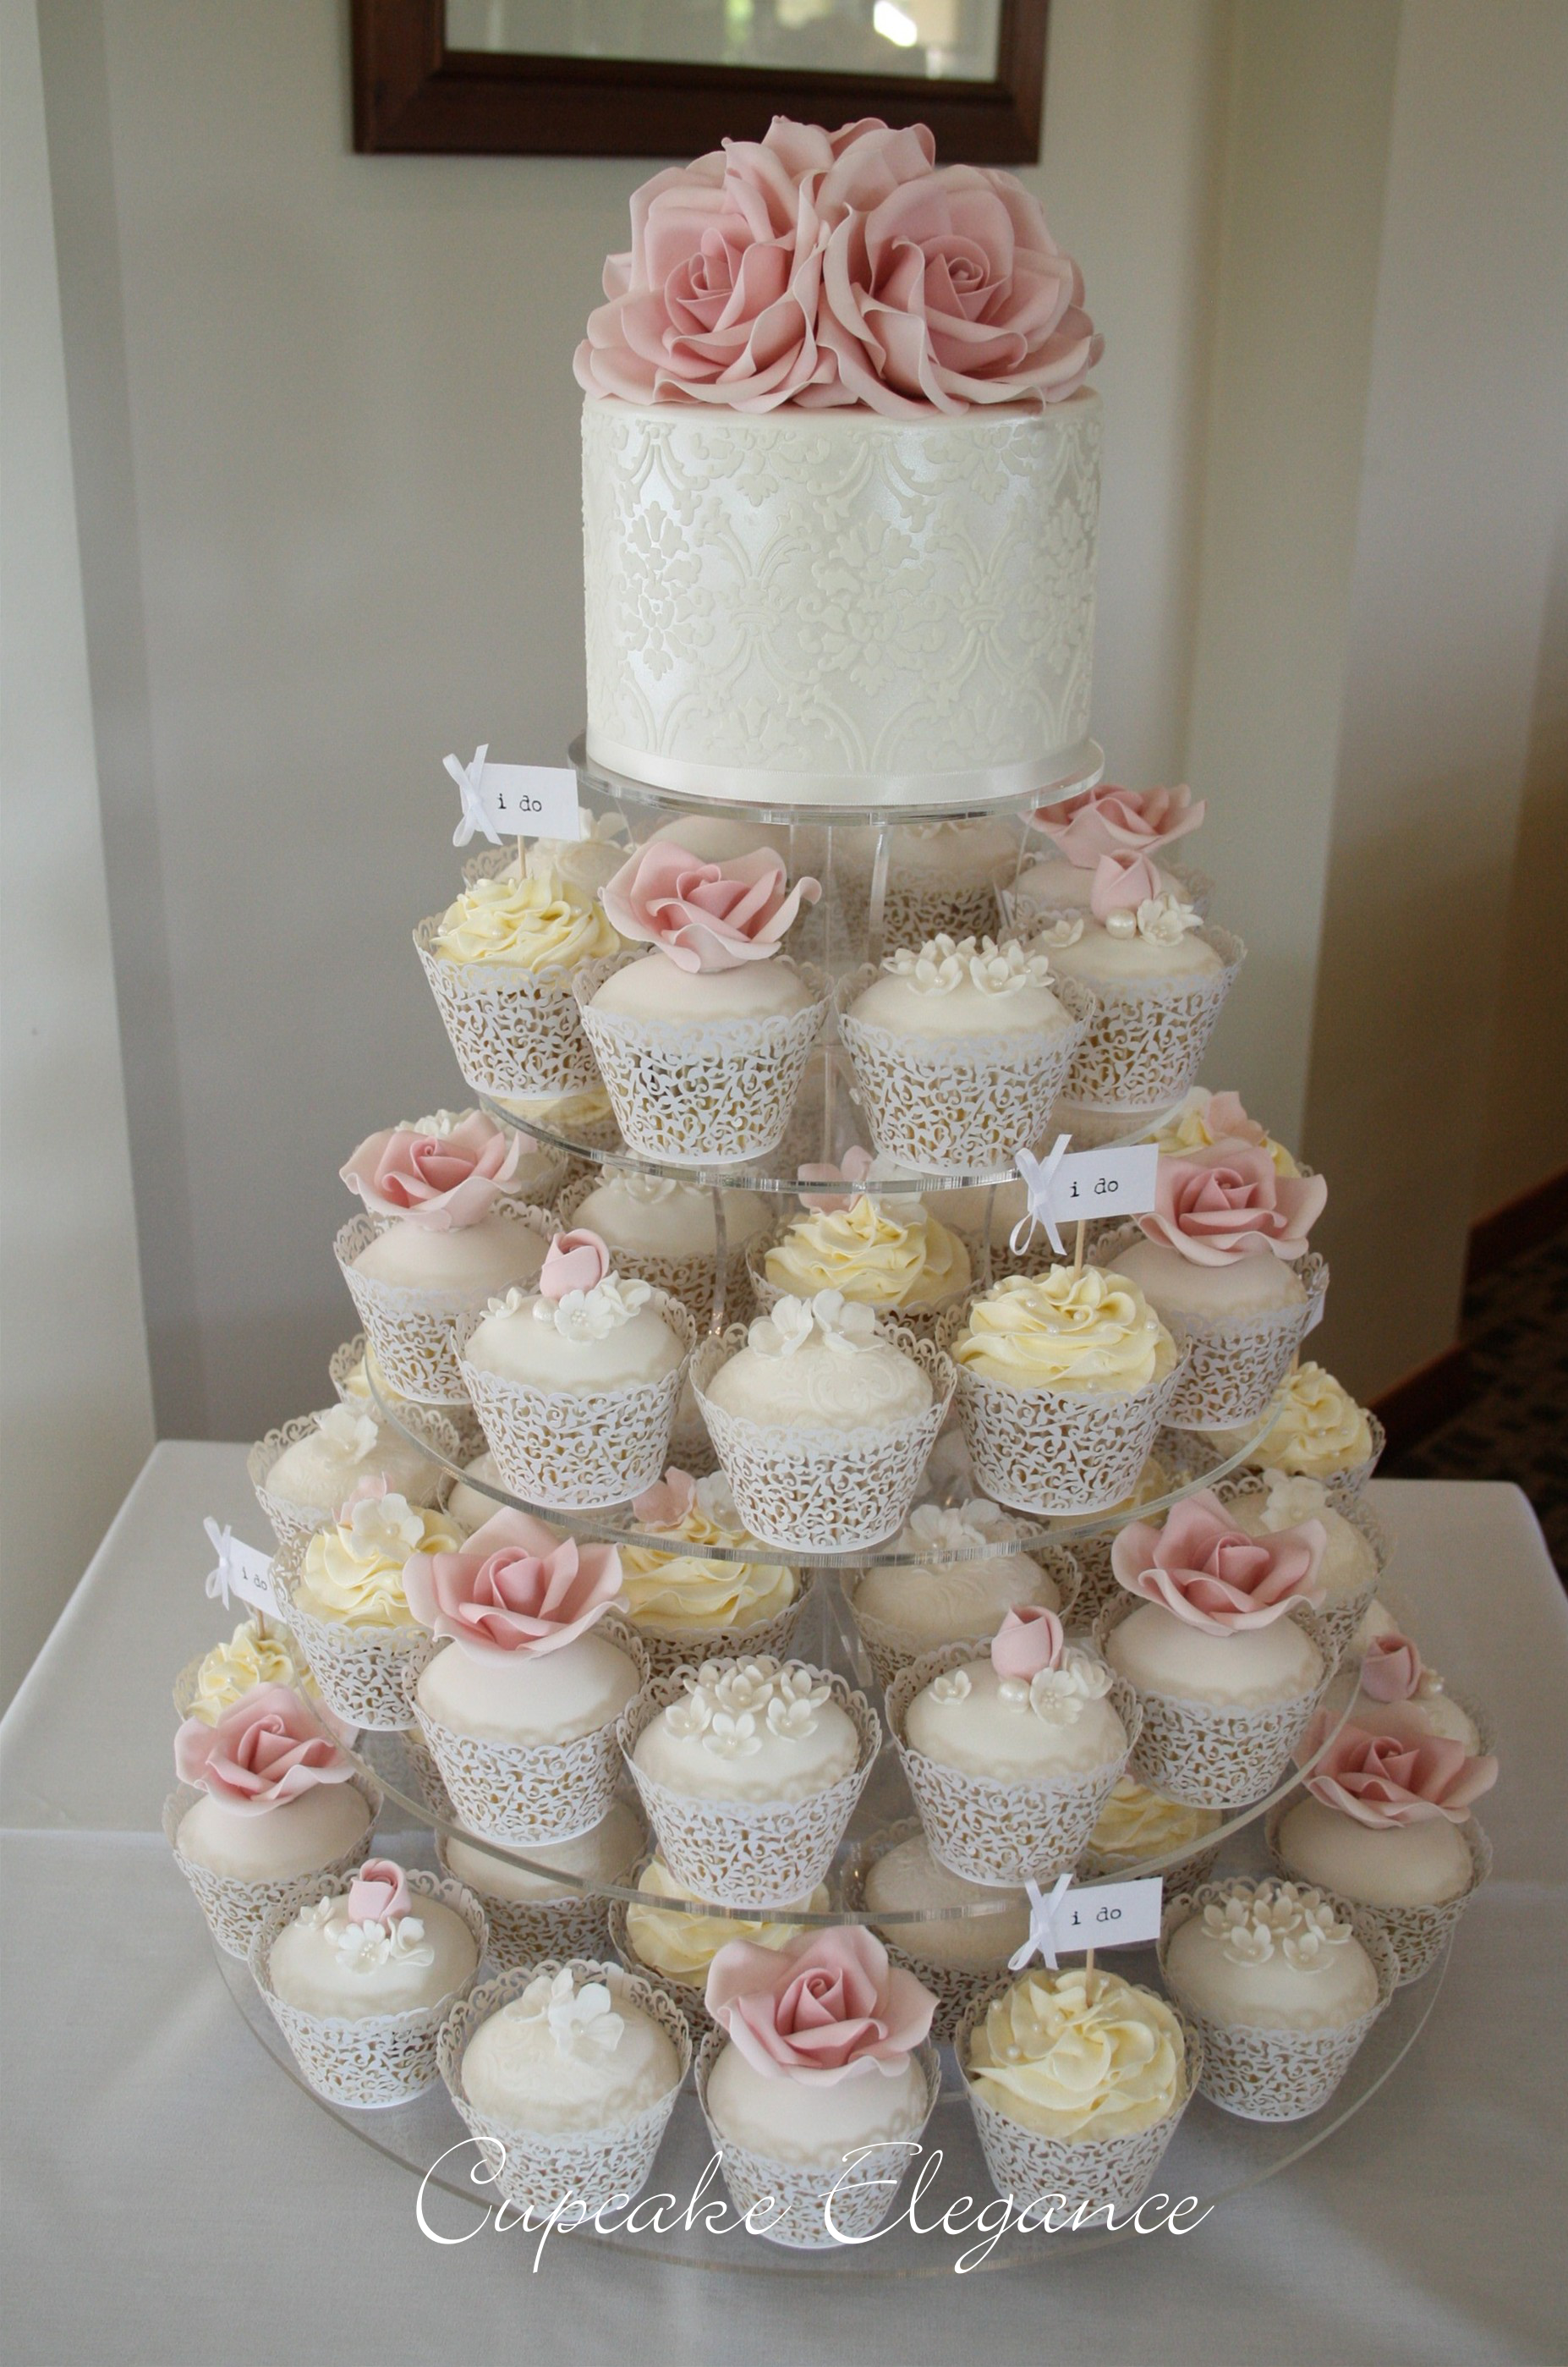 Wedding cake ideas soft pink roses with pearls and lace